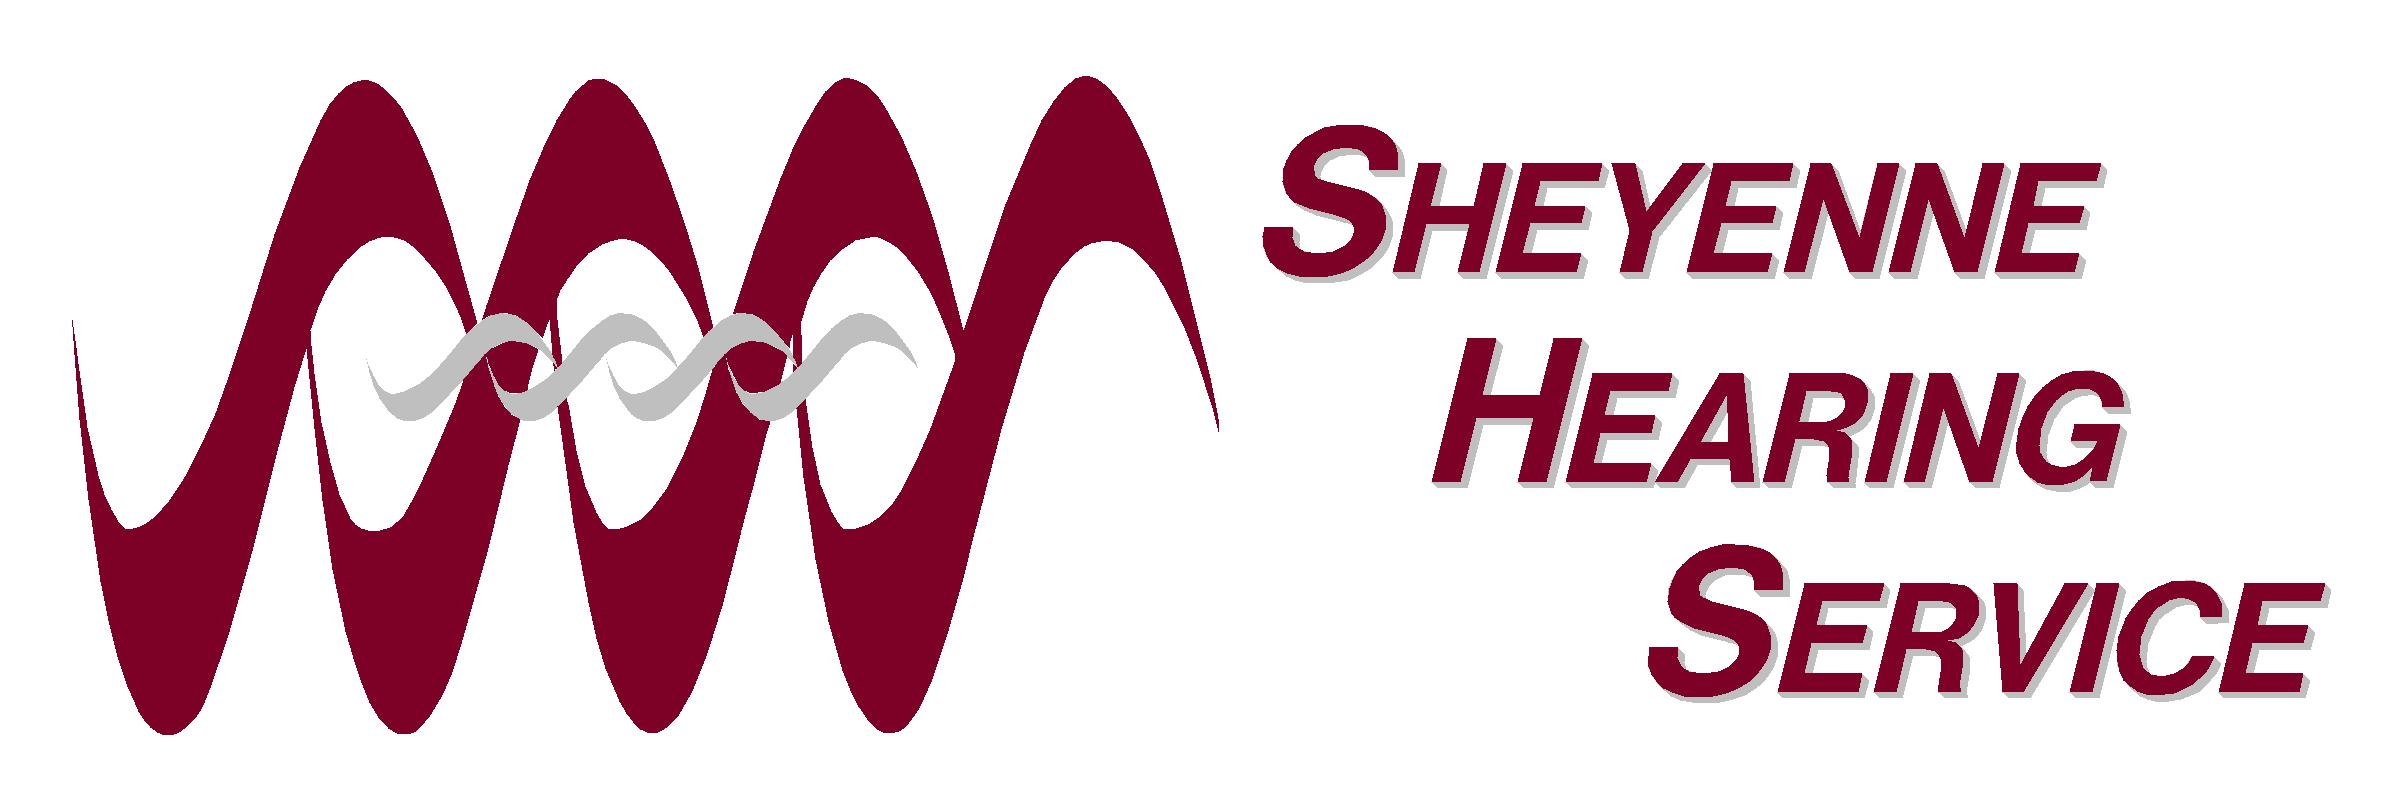 Sheyenne Hearing Services, Inc.